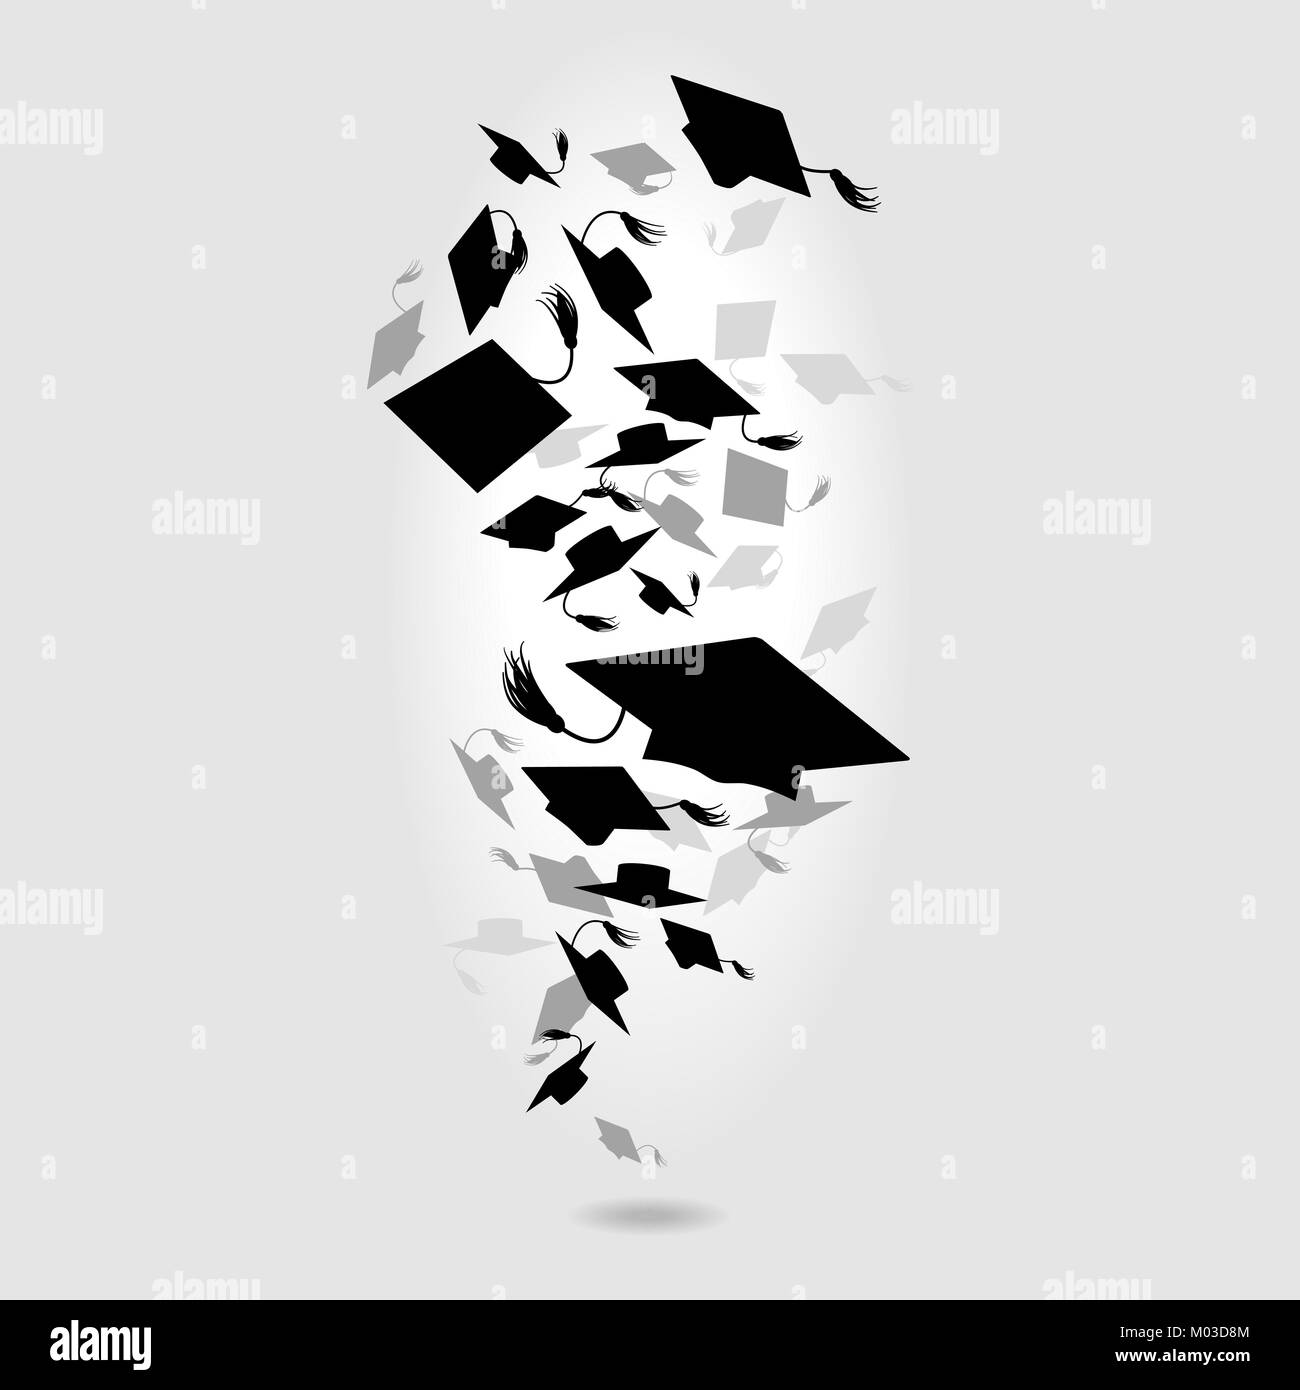 Caps graduates whirlwind on a gray background - Stock Image